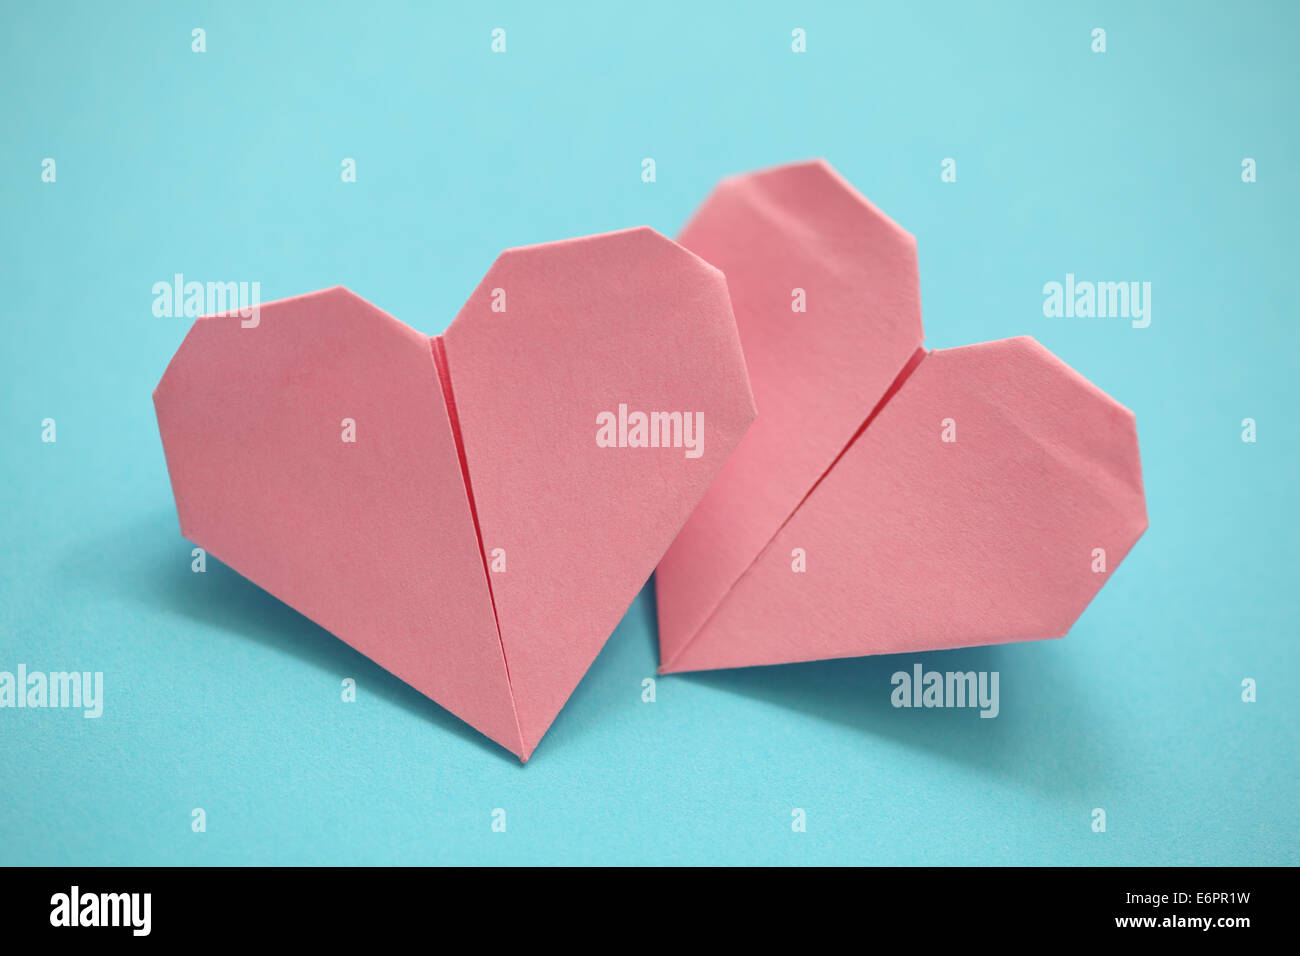 Two origami heart on blue background. Close-up. - Stock Image